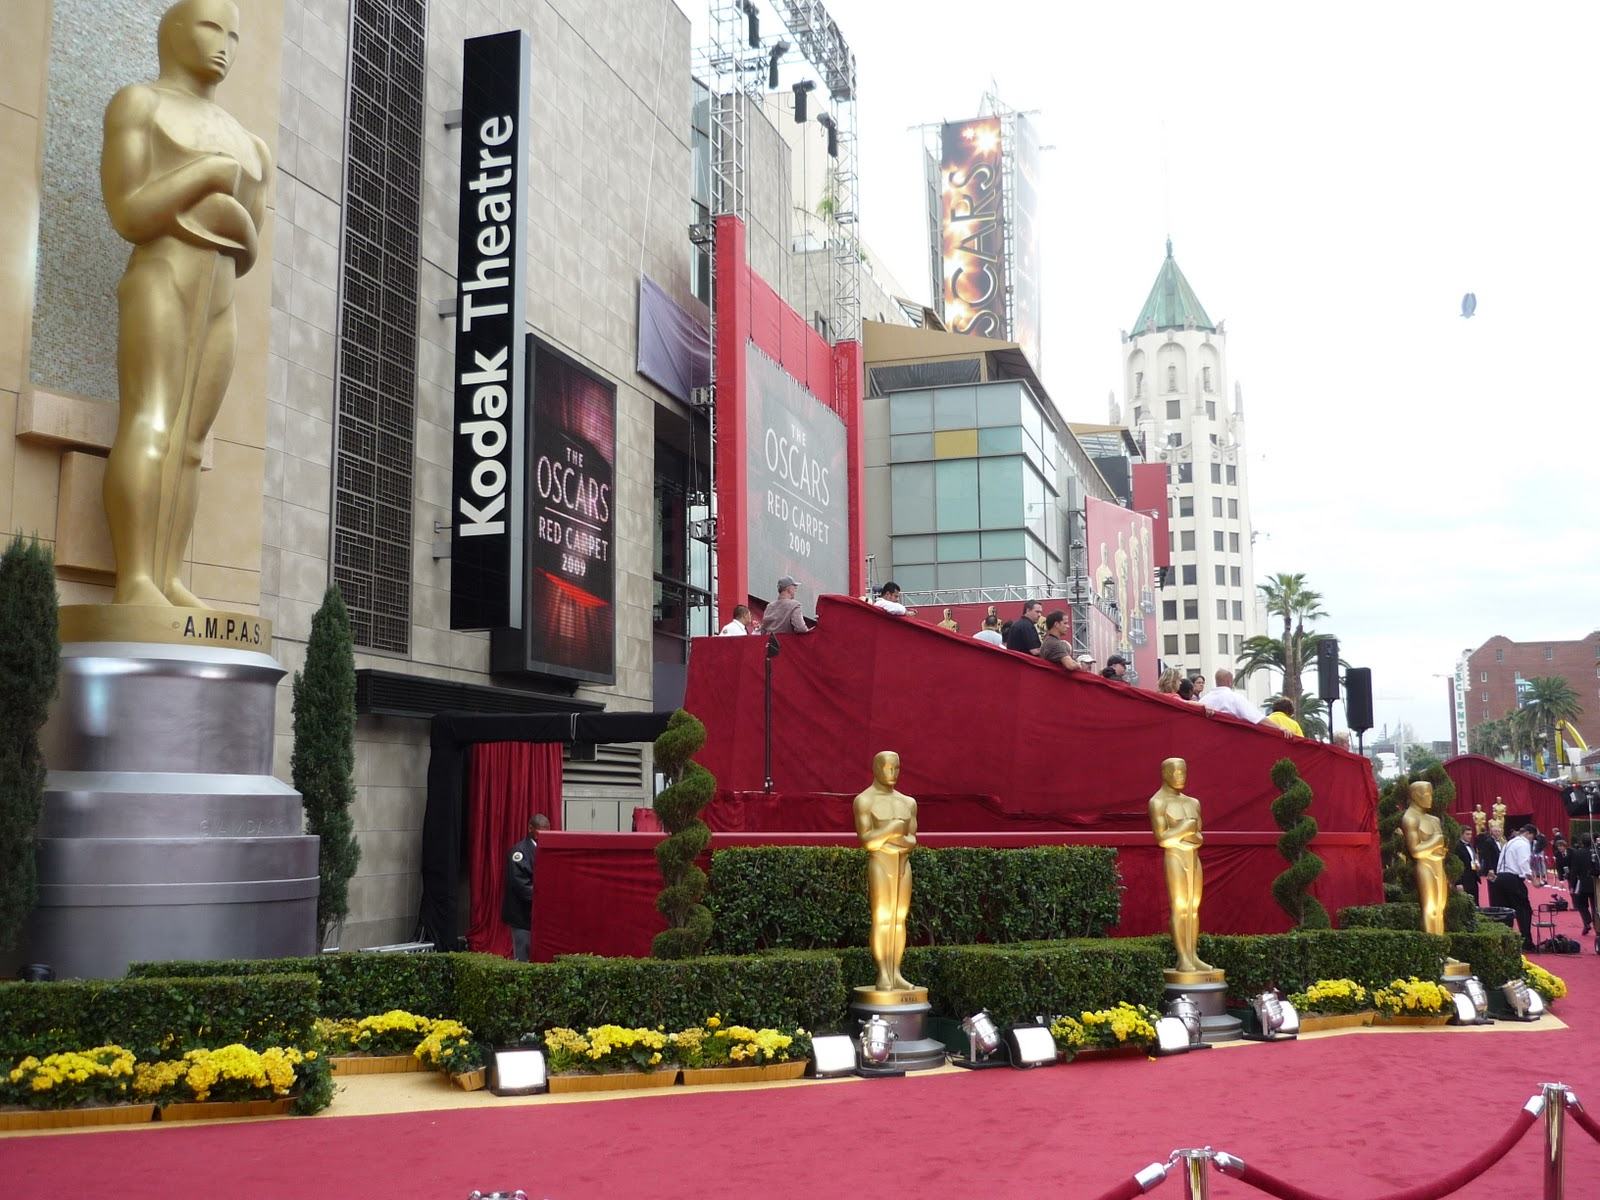 52e821564fe55_red_carpet_at_81th_academy_awards_in_kodak_theatre